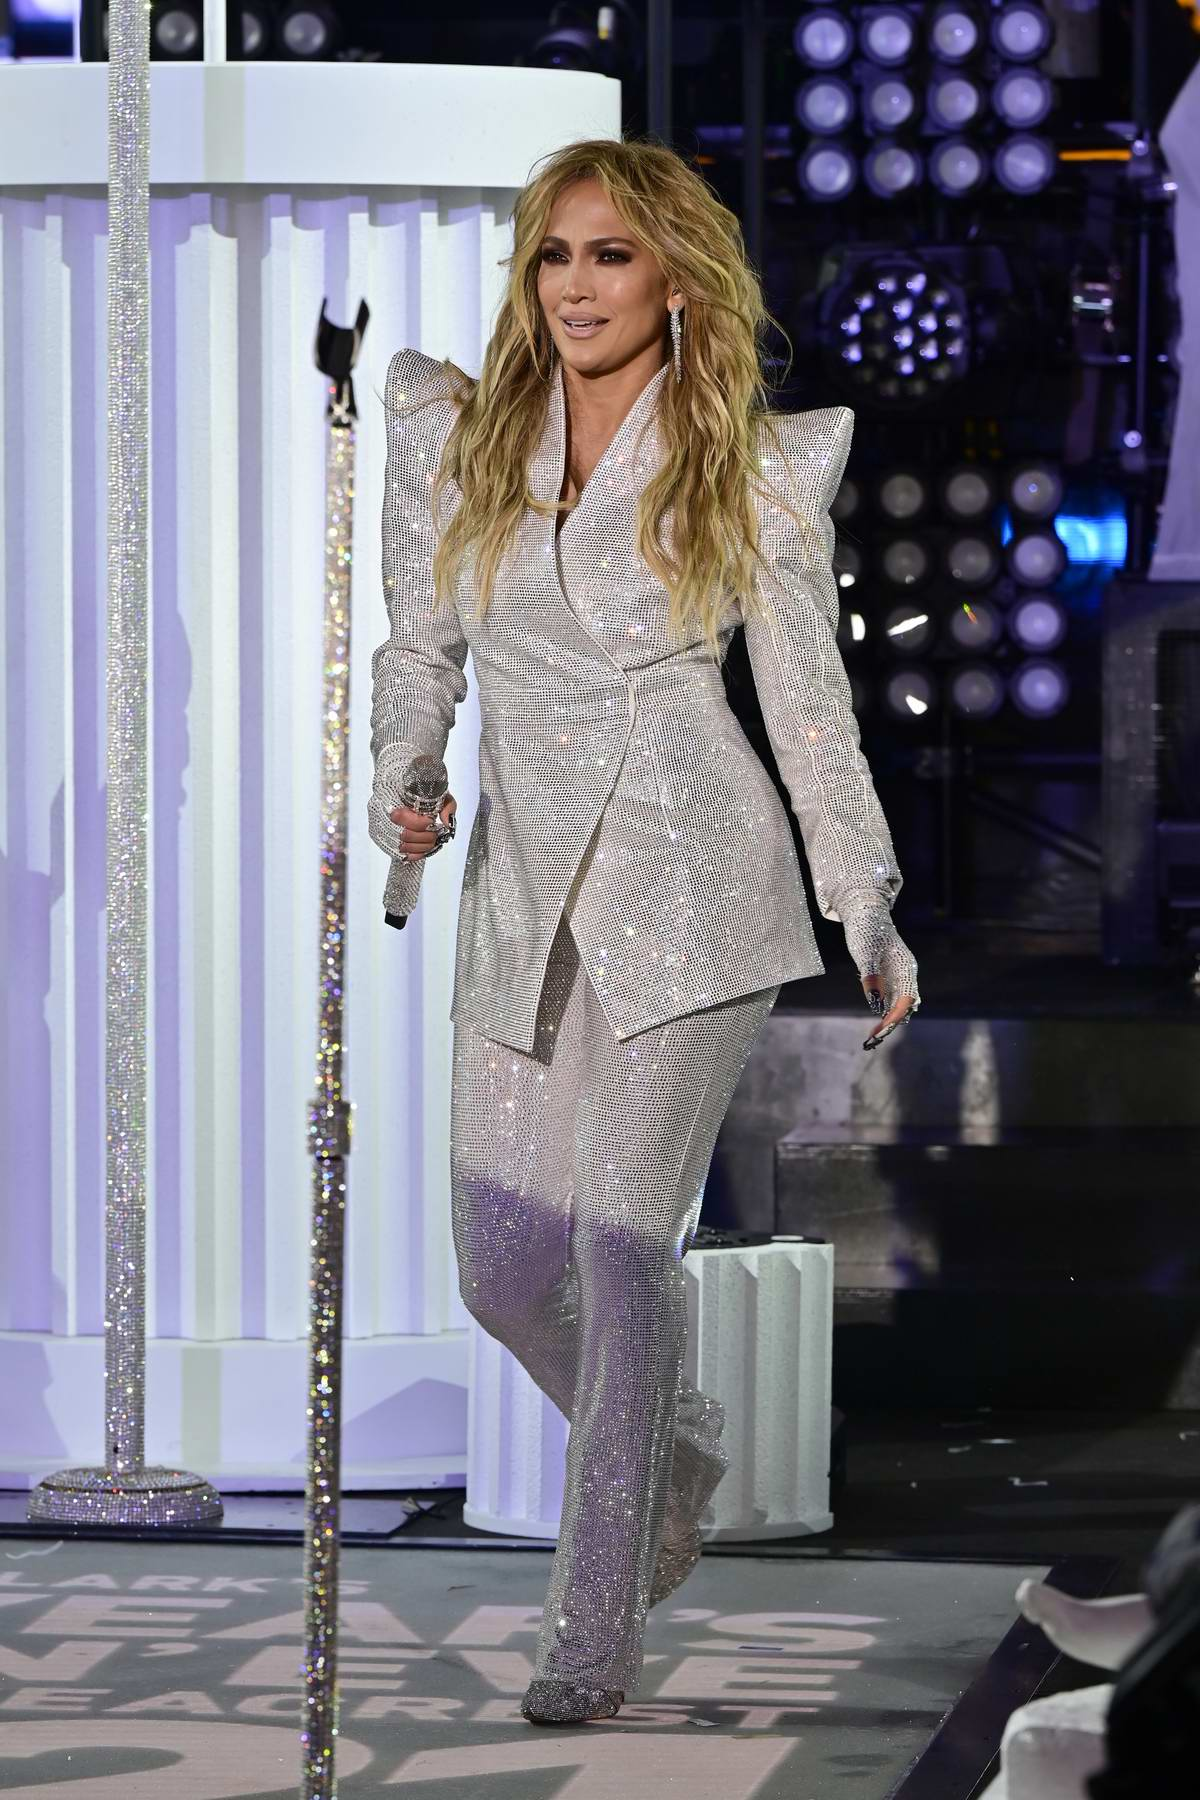 Jennifer Lopez performs live at Dick Clark's New Years Rockin' Eve at Times Square in New York City